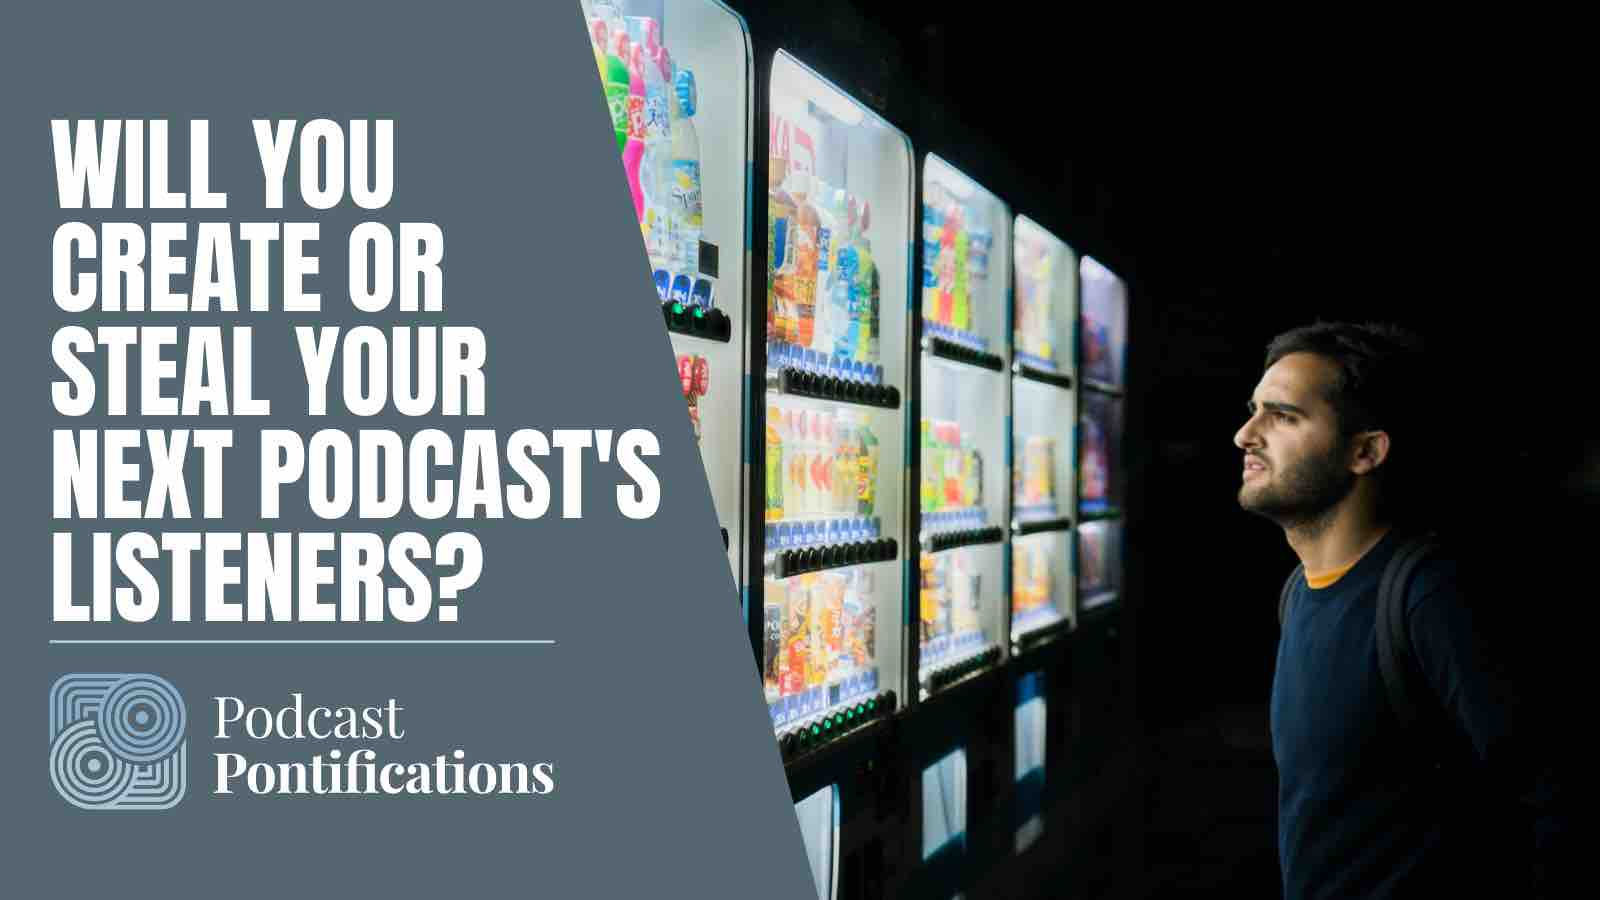 Will You Create or Steal Your Next Podcast's Listeners?